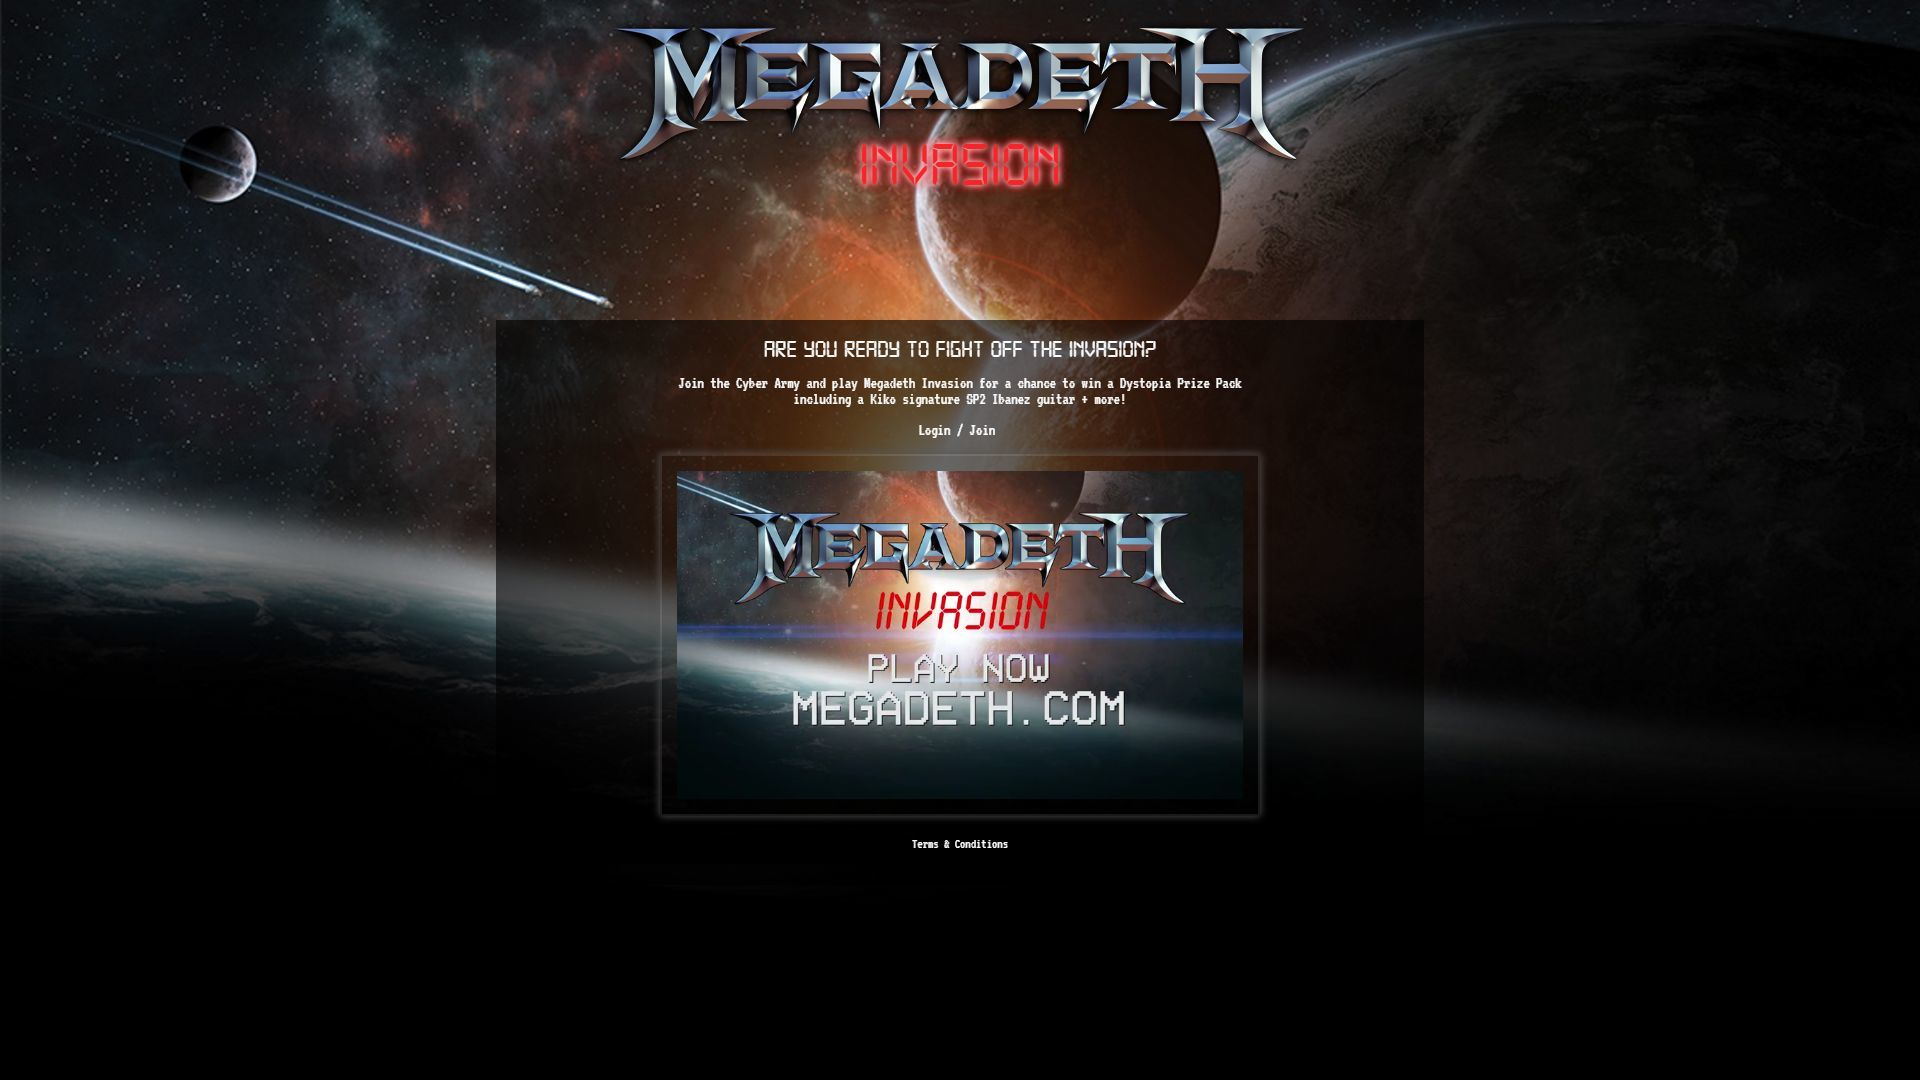 Megadeth: Invasion Browser Title screen.